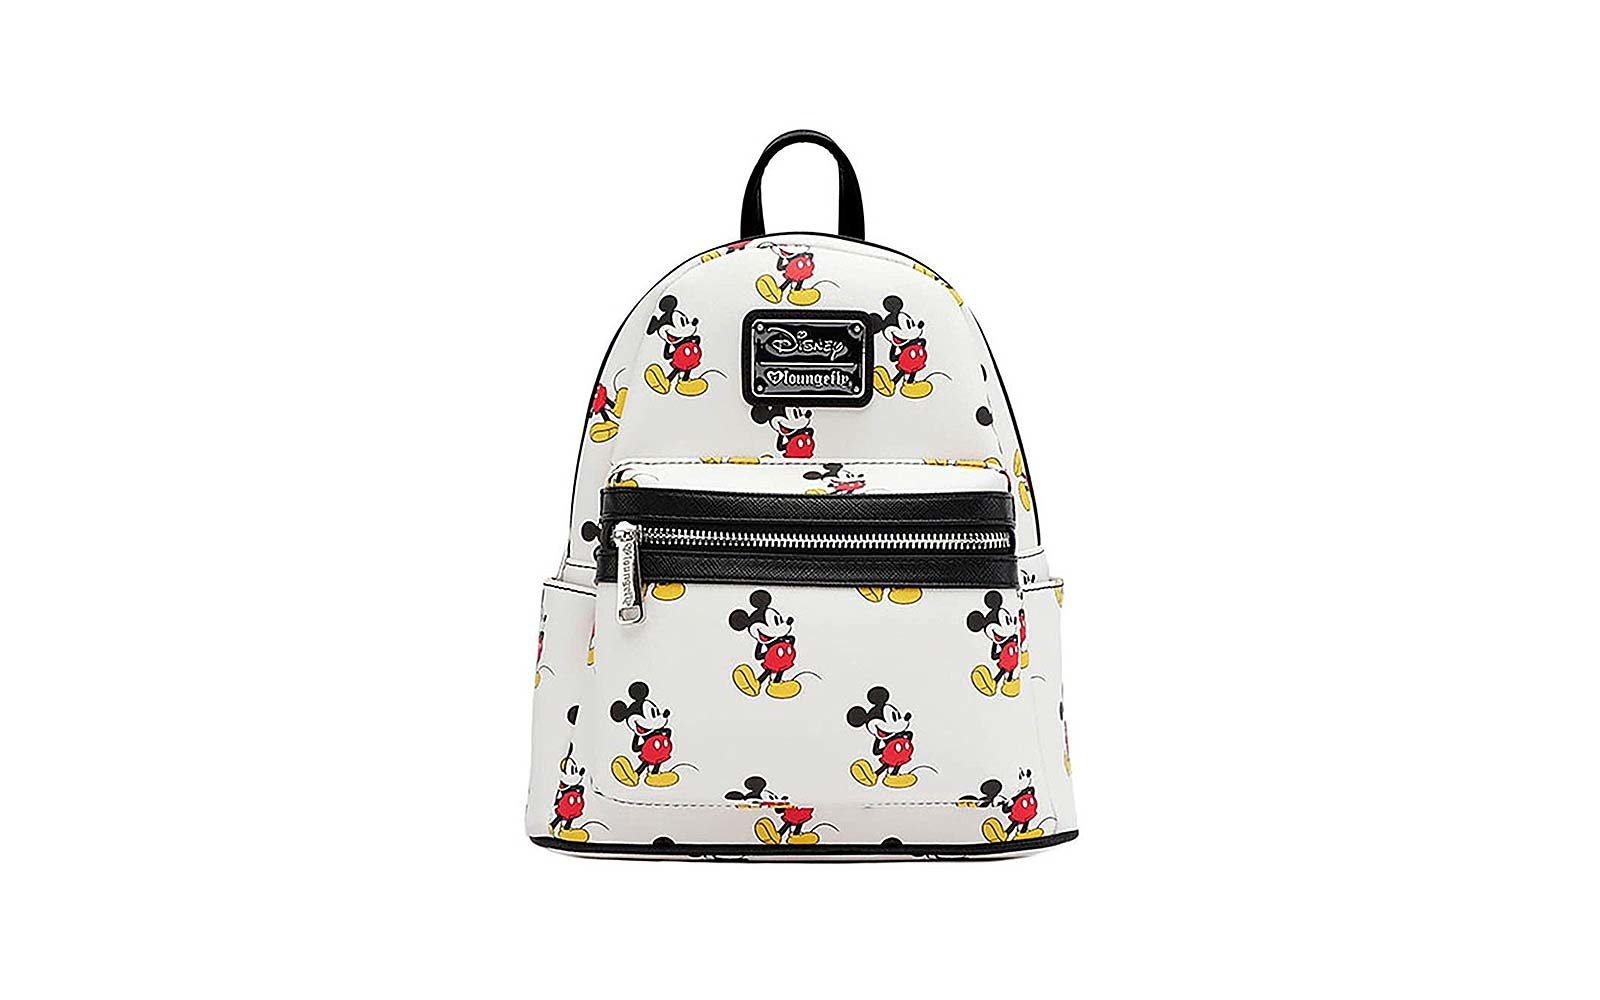 Disney-themed Luggage for Kids and Adults | Travel + Leisure